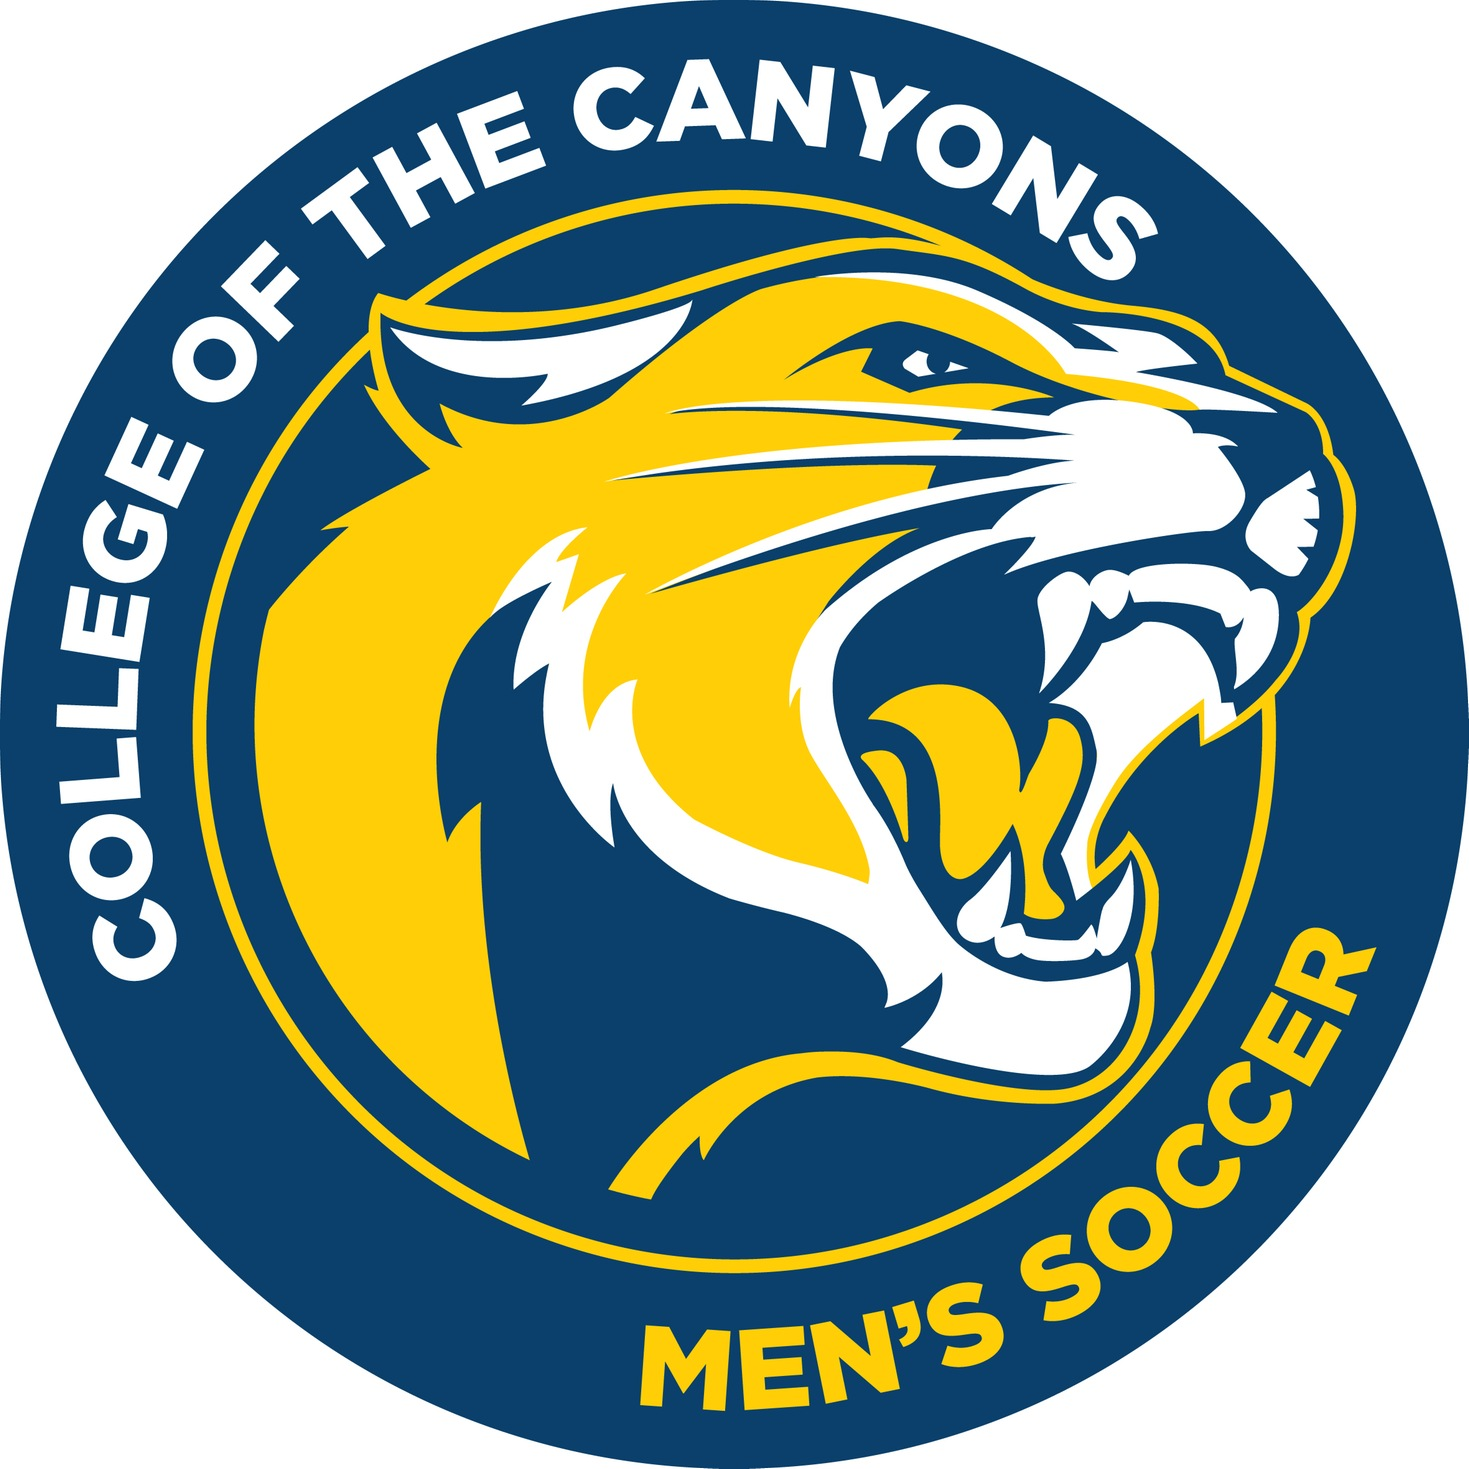 College of the Canyons men's soccer logo.